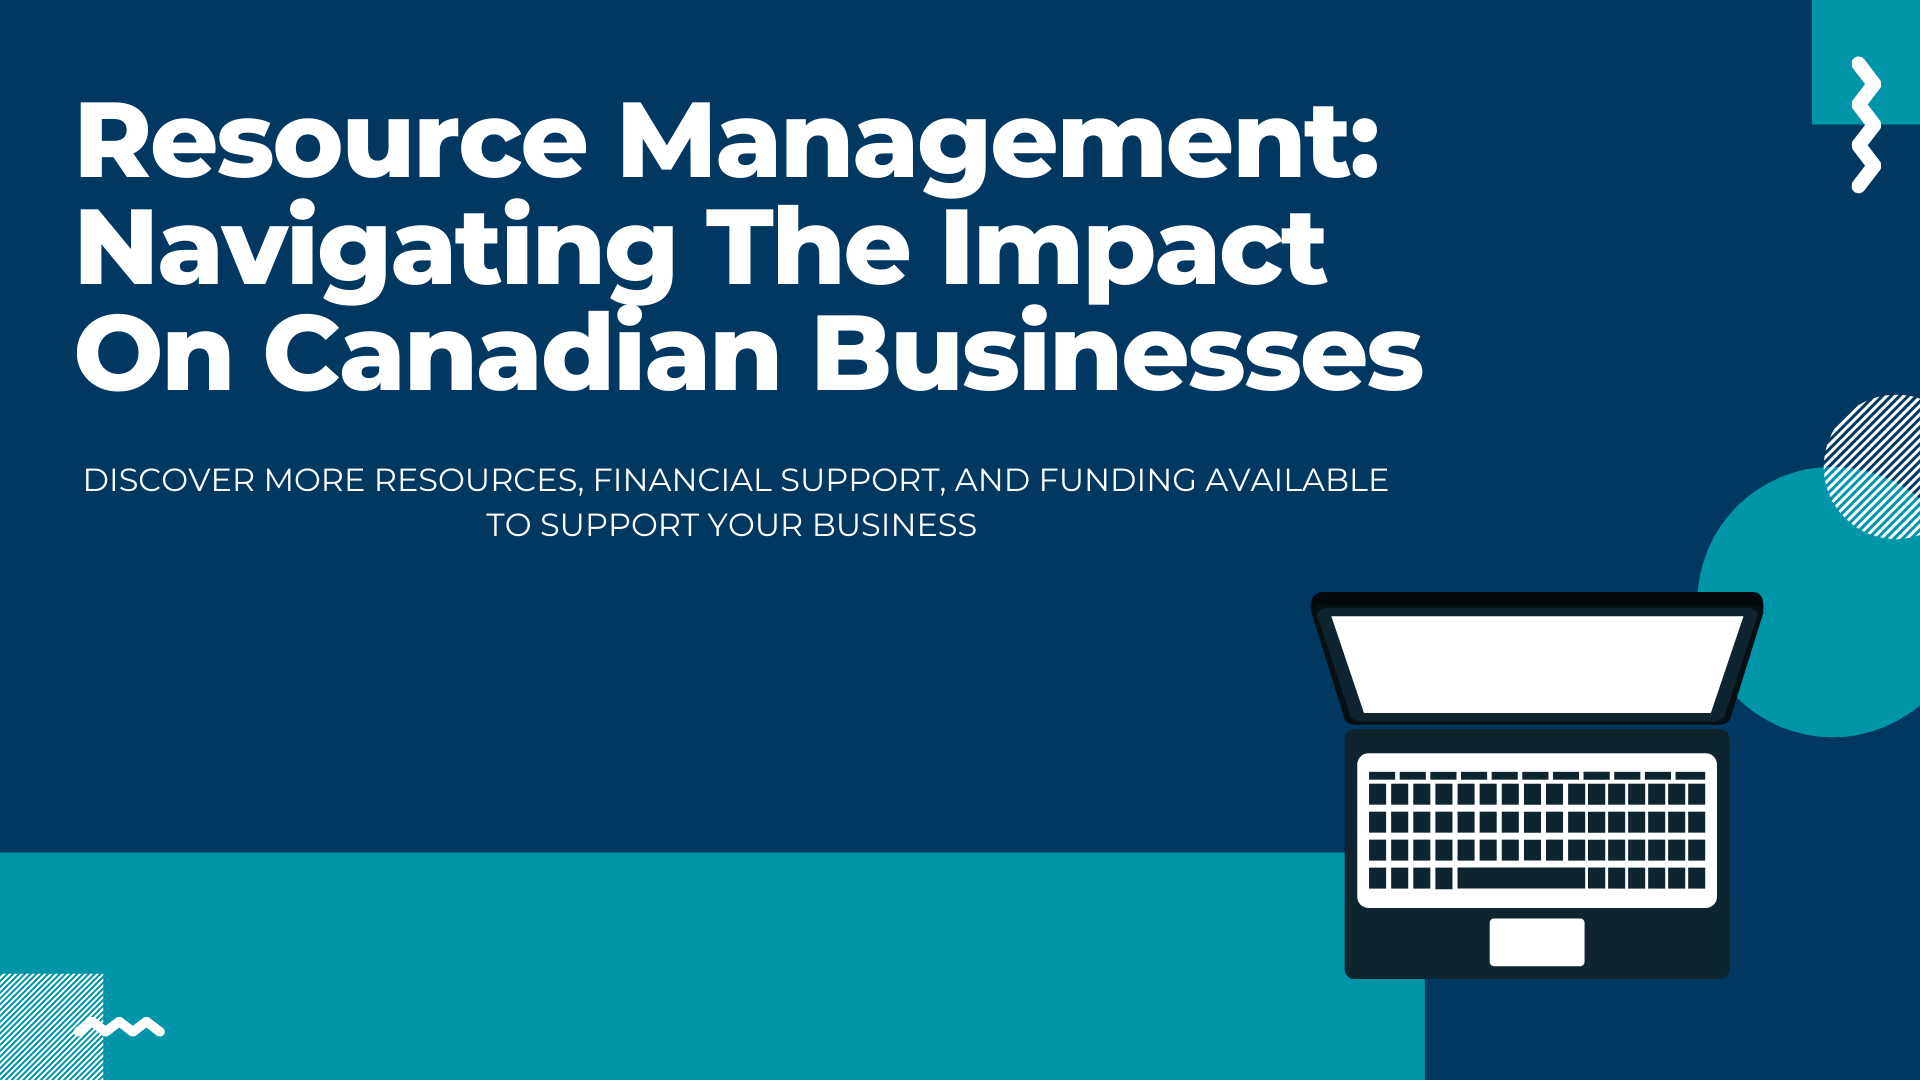 Resource Management: Navigating The Impact On Canadian Businesses